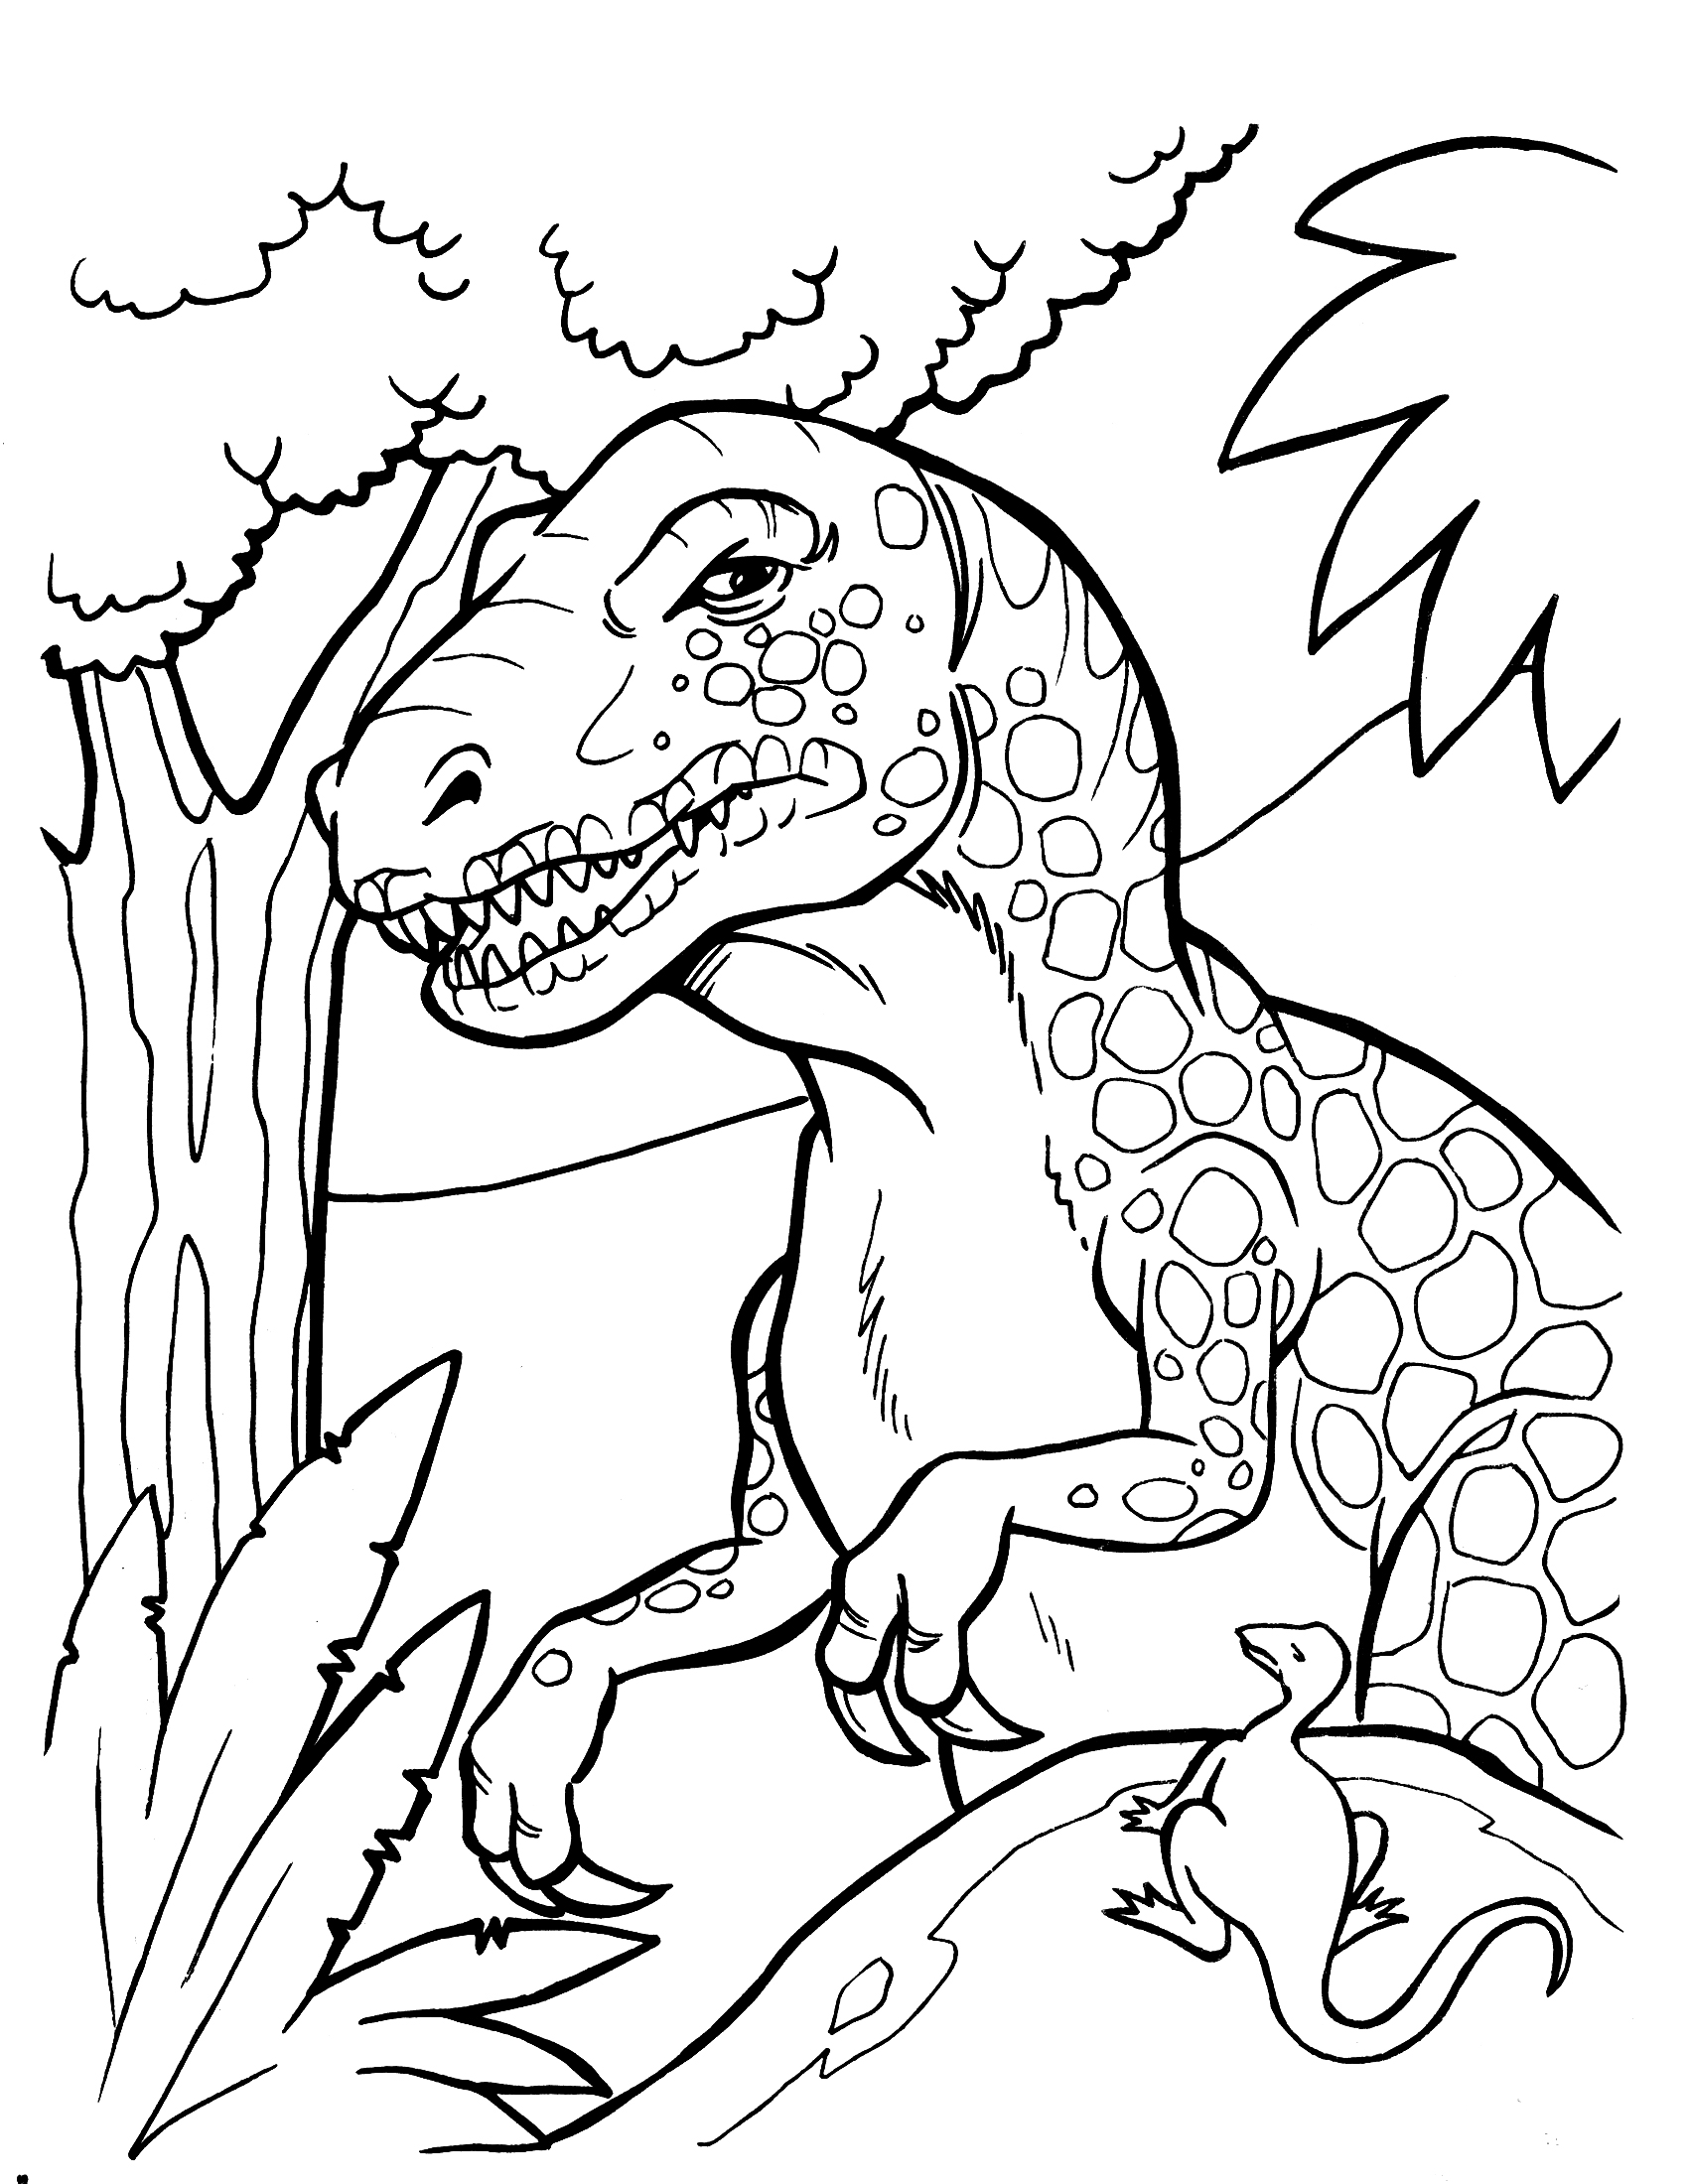 Realistic Dinosaur Coloring Pages To Print